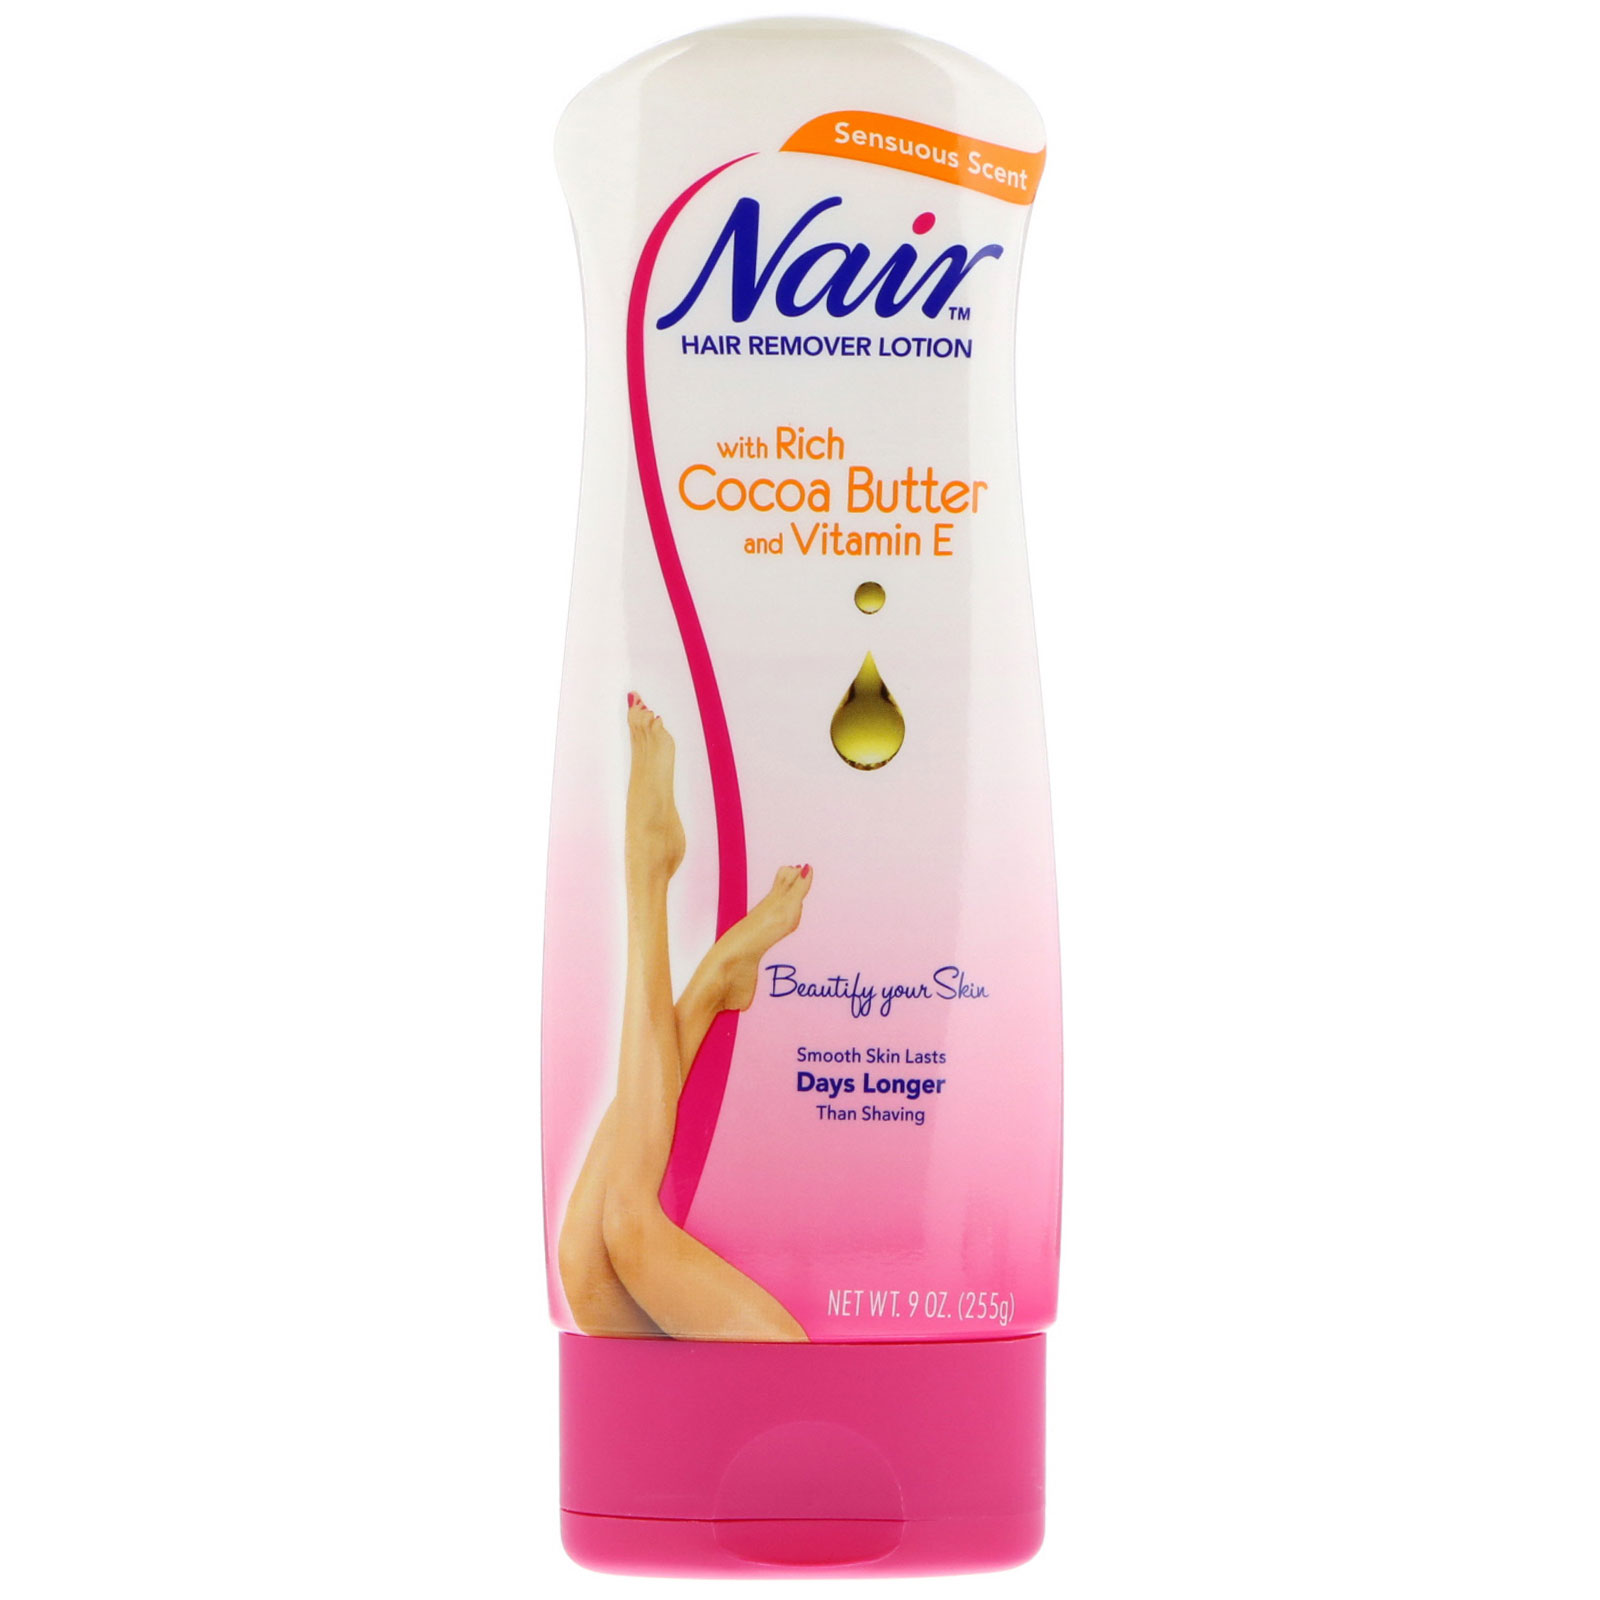 Nair Hair Remover Lotion With Rich Cocoa Butter And Vitamin E 9